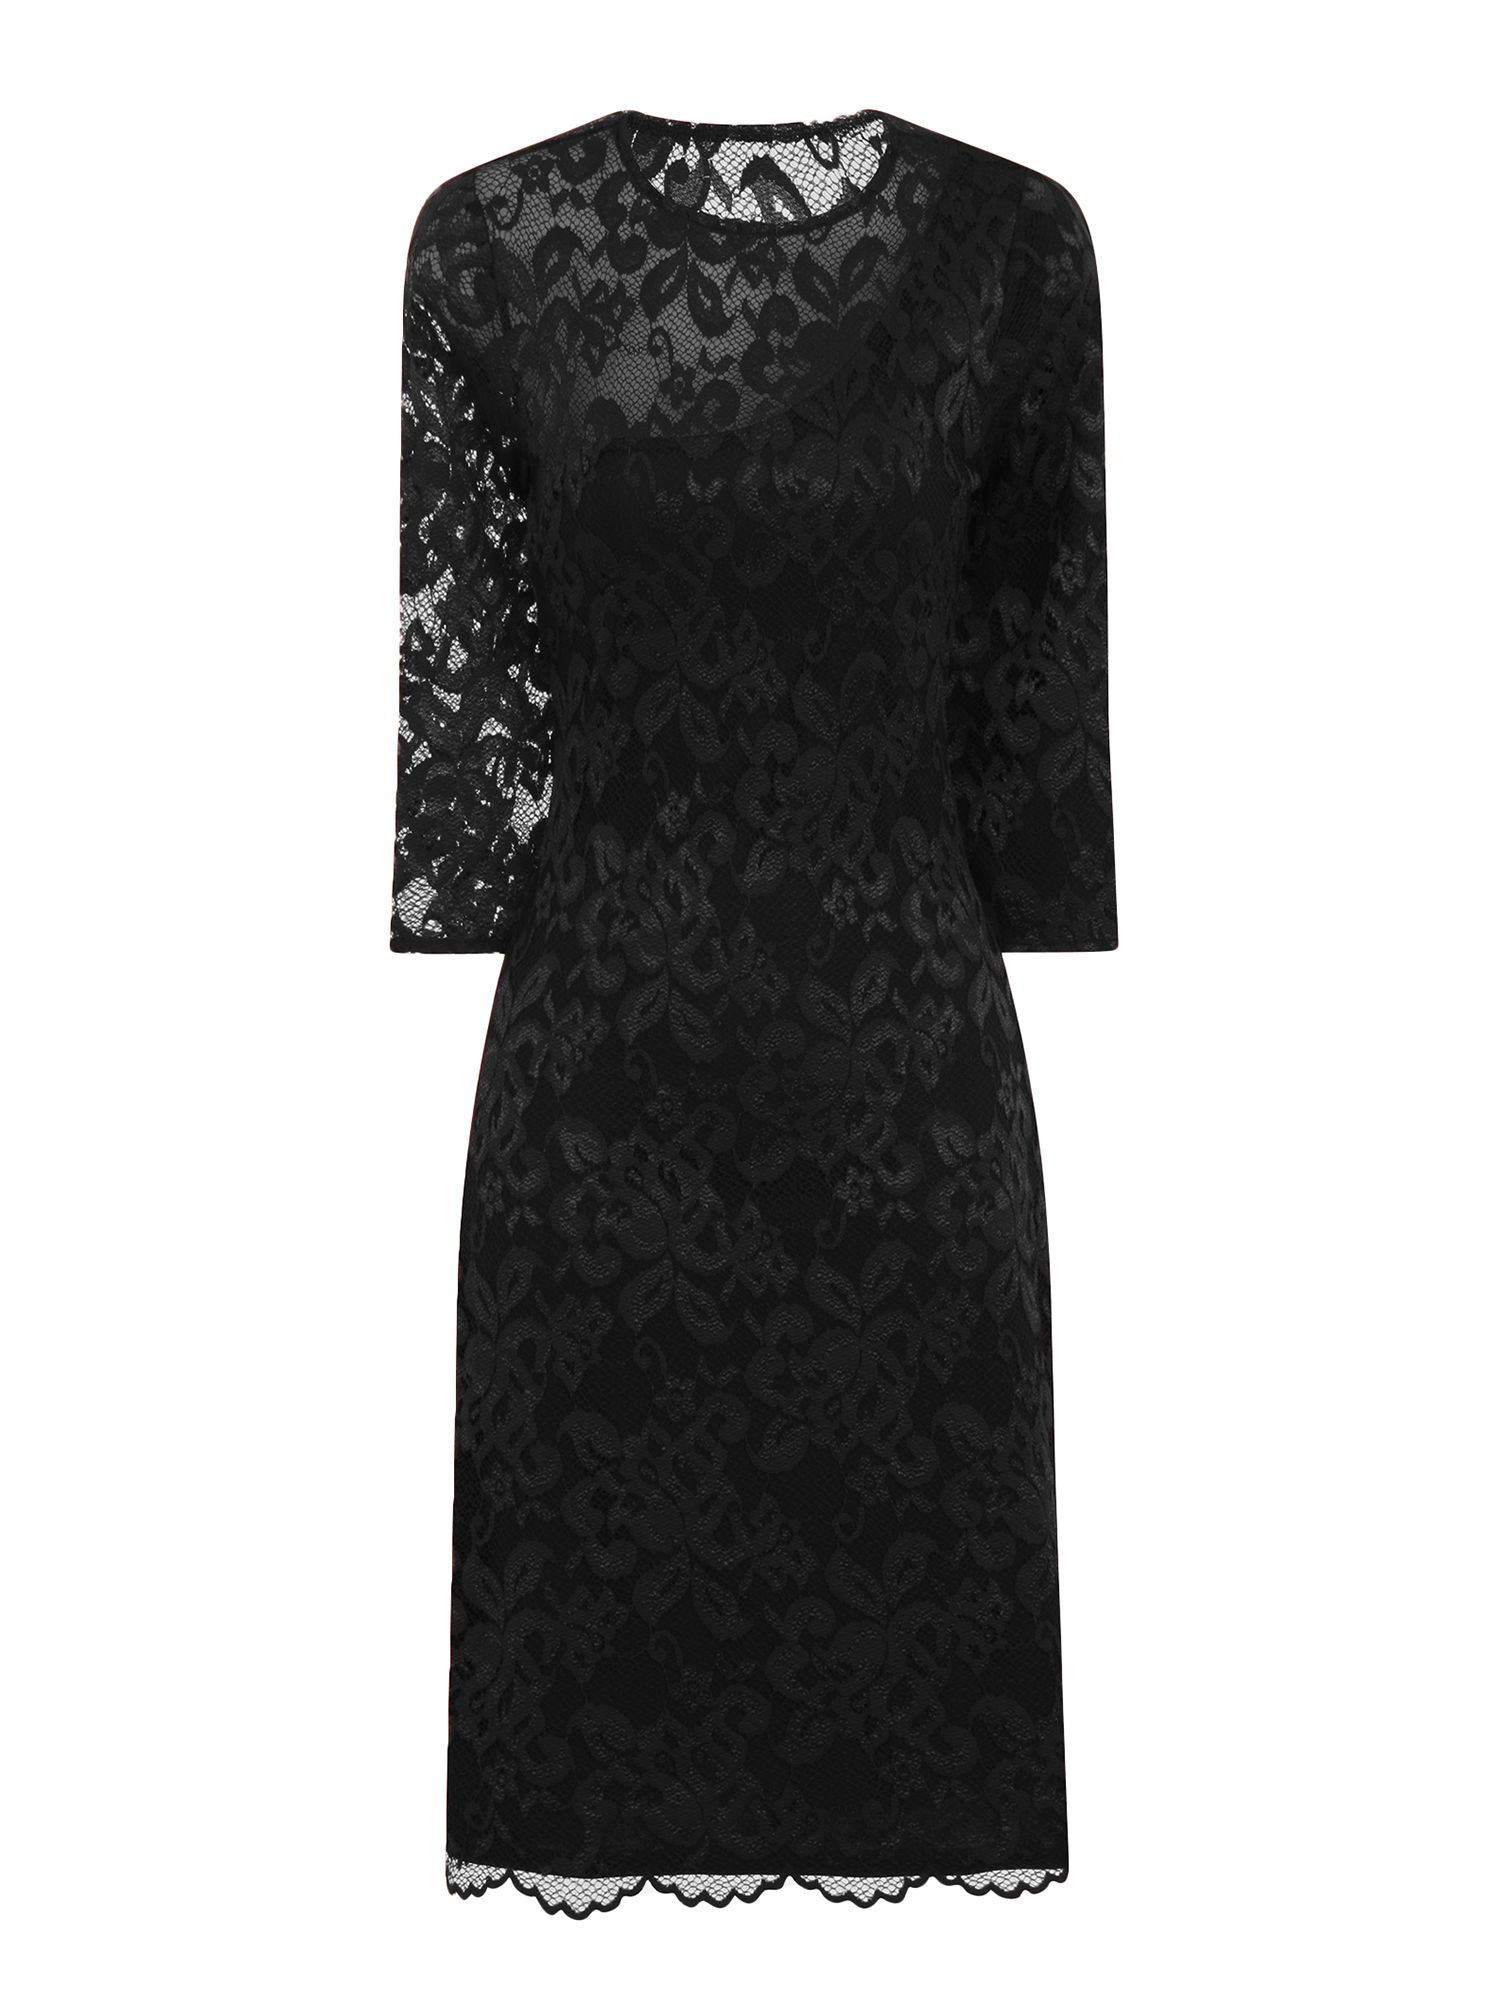 HotSquash One-Sleeved Lace Dress in Clever Fabric, Black